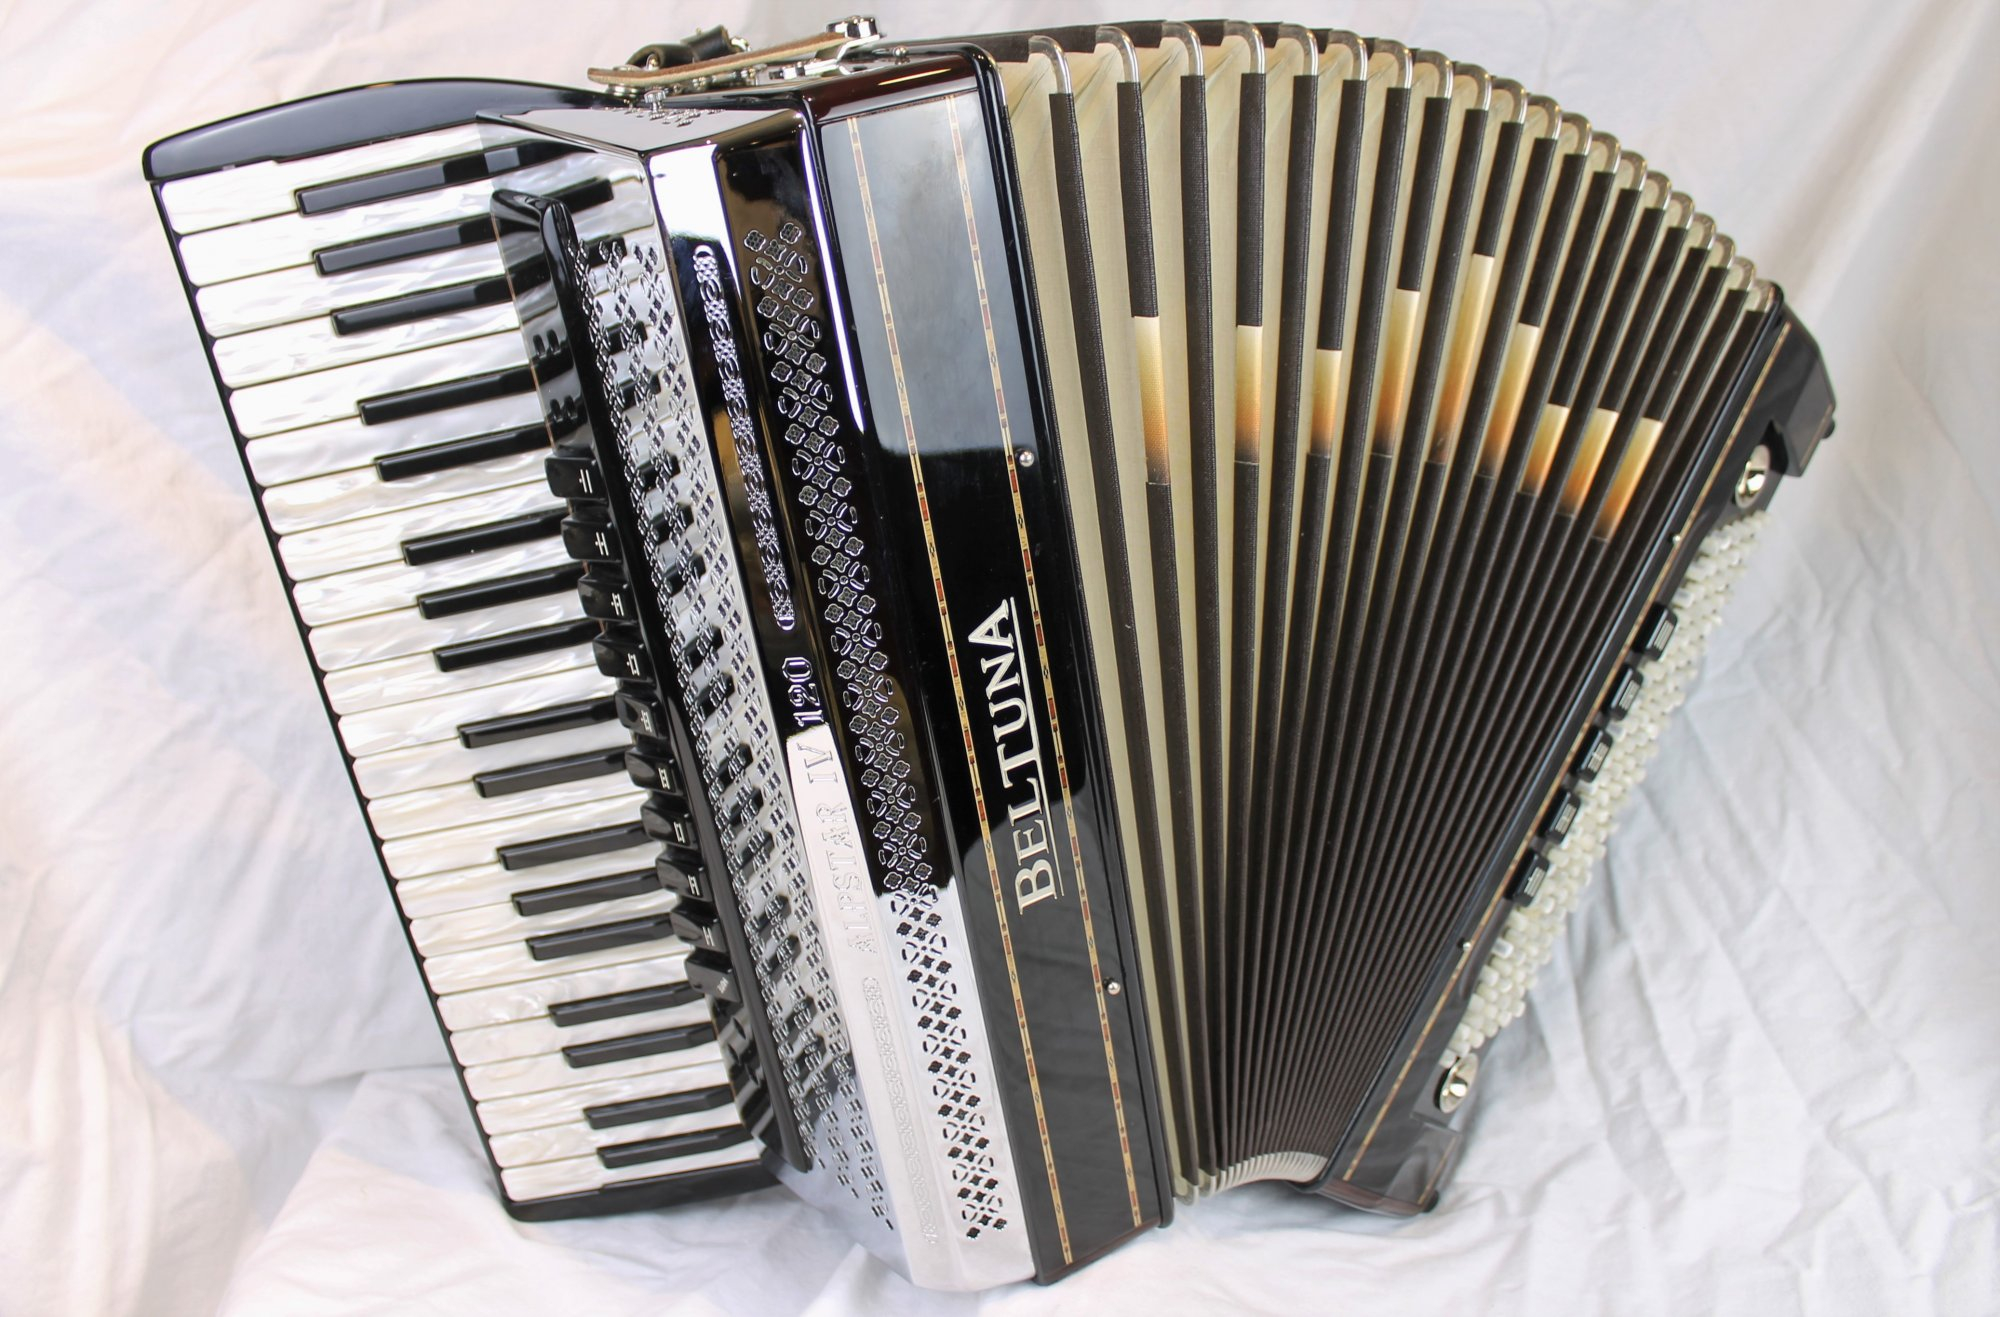 4574 - Certified Pre-Owned Black Forest Beltuna Alpstar IV M Piano Accordion LMMM 41 120